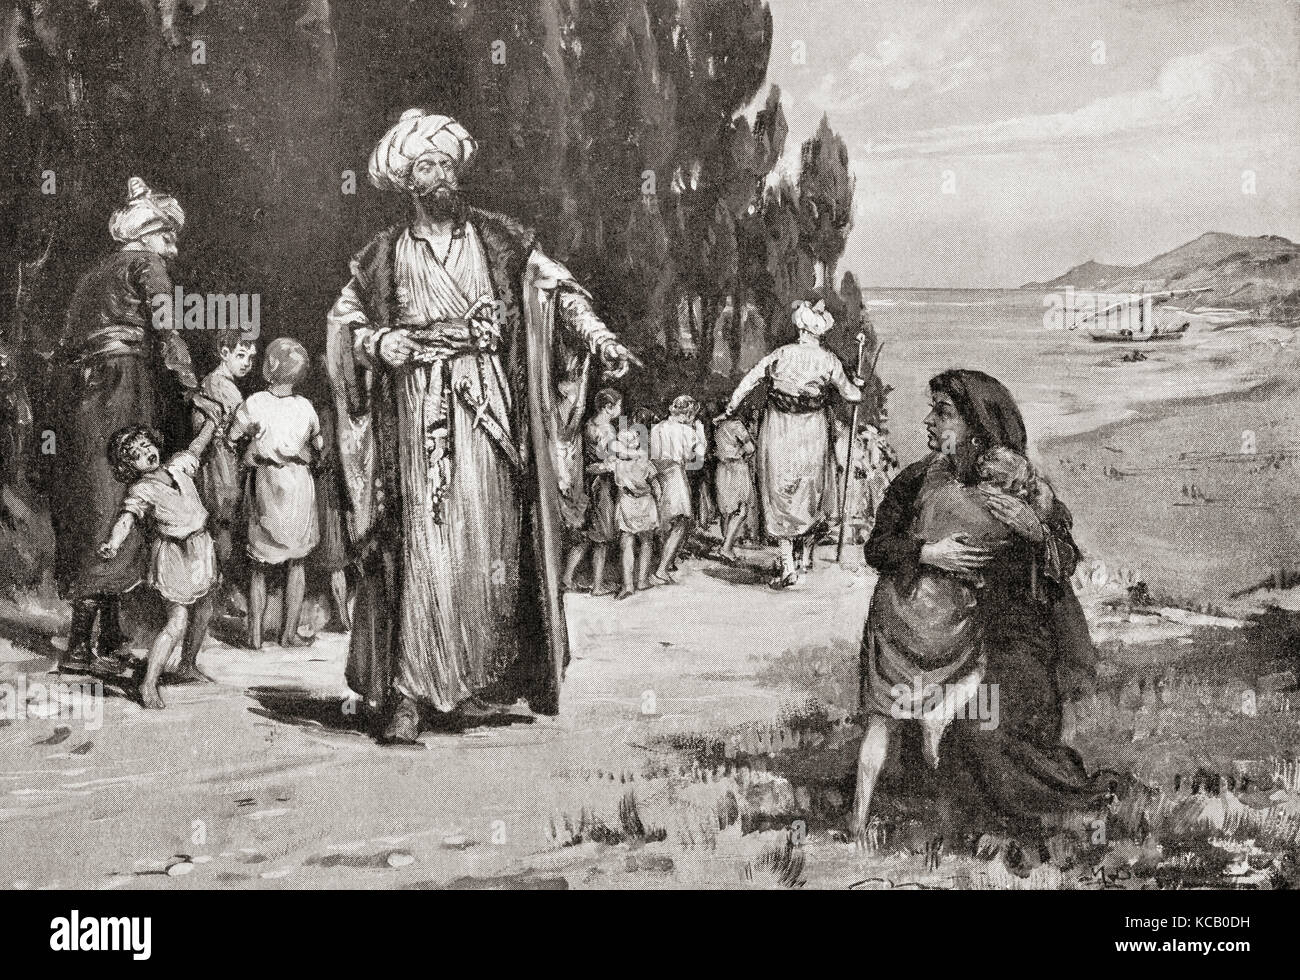 The tribute of children by the Greeks to the Turks.  The Greeks were compelled by the Turks to give up a certain - Stock Image